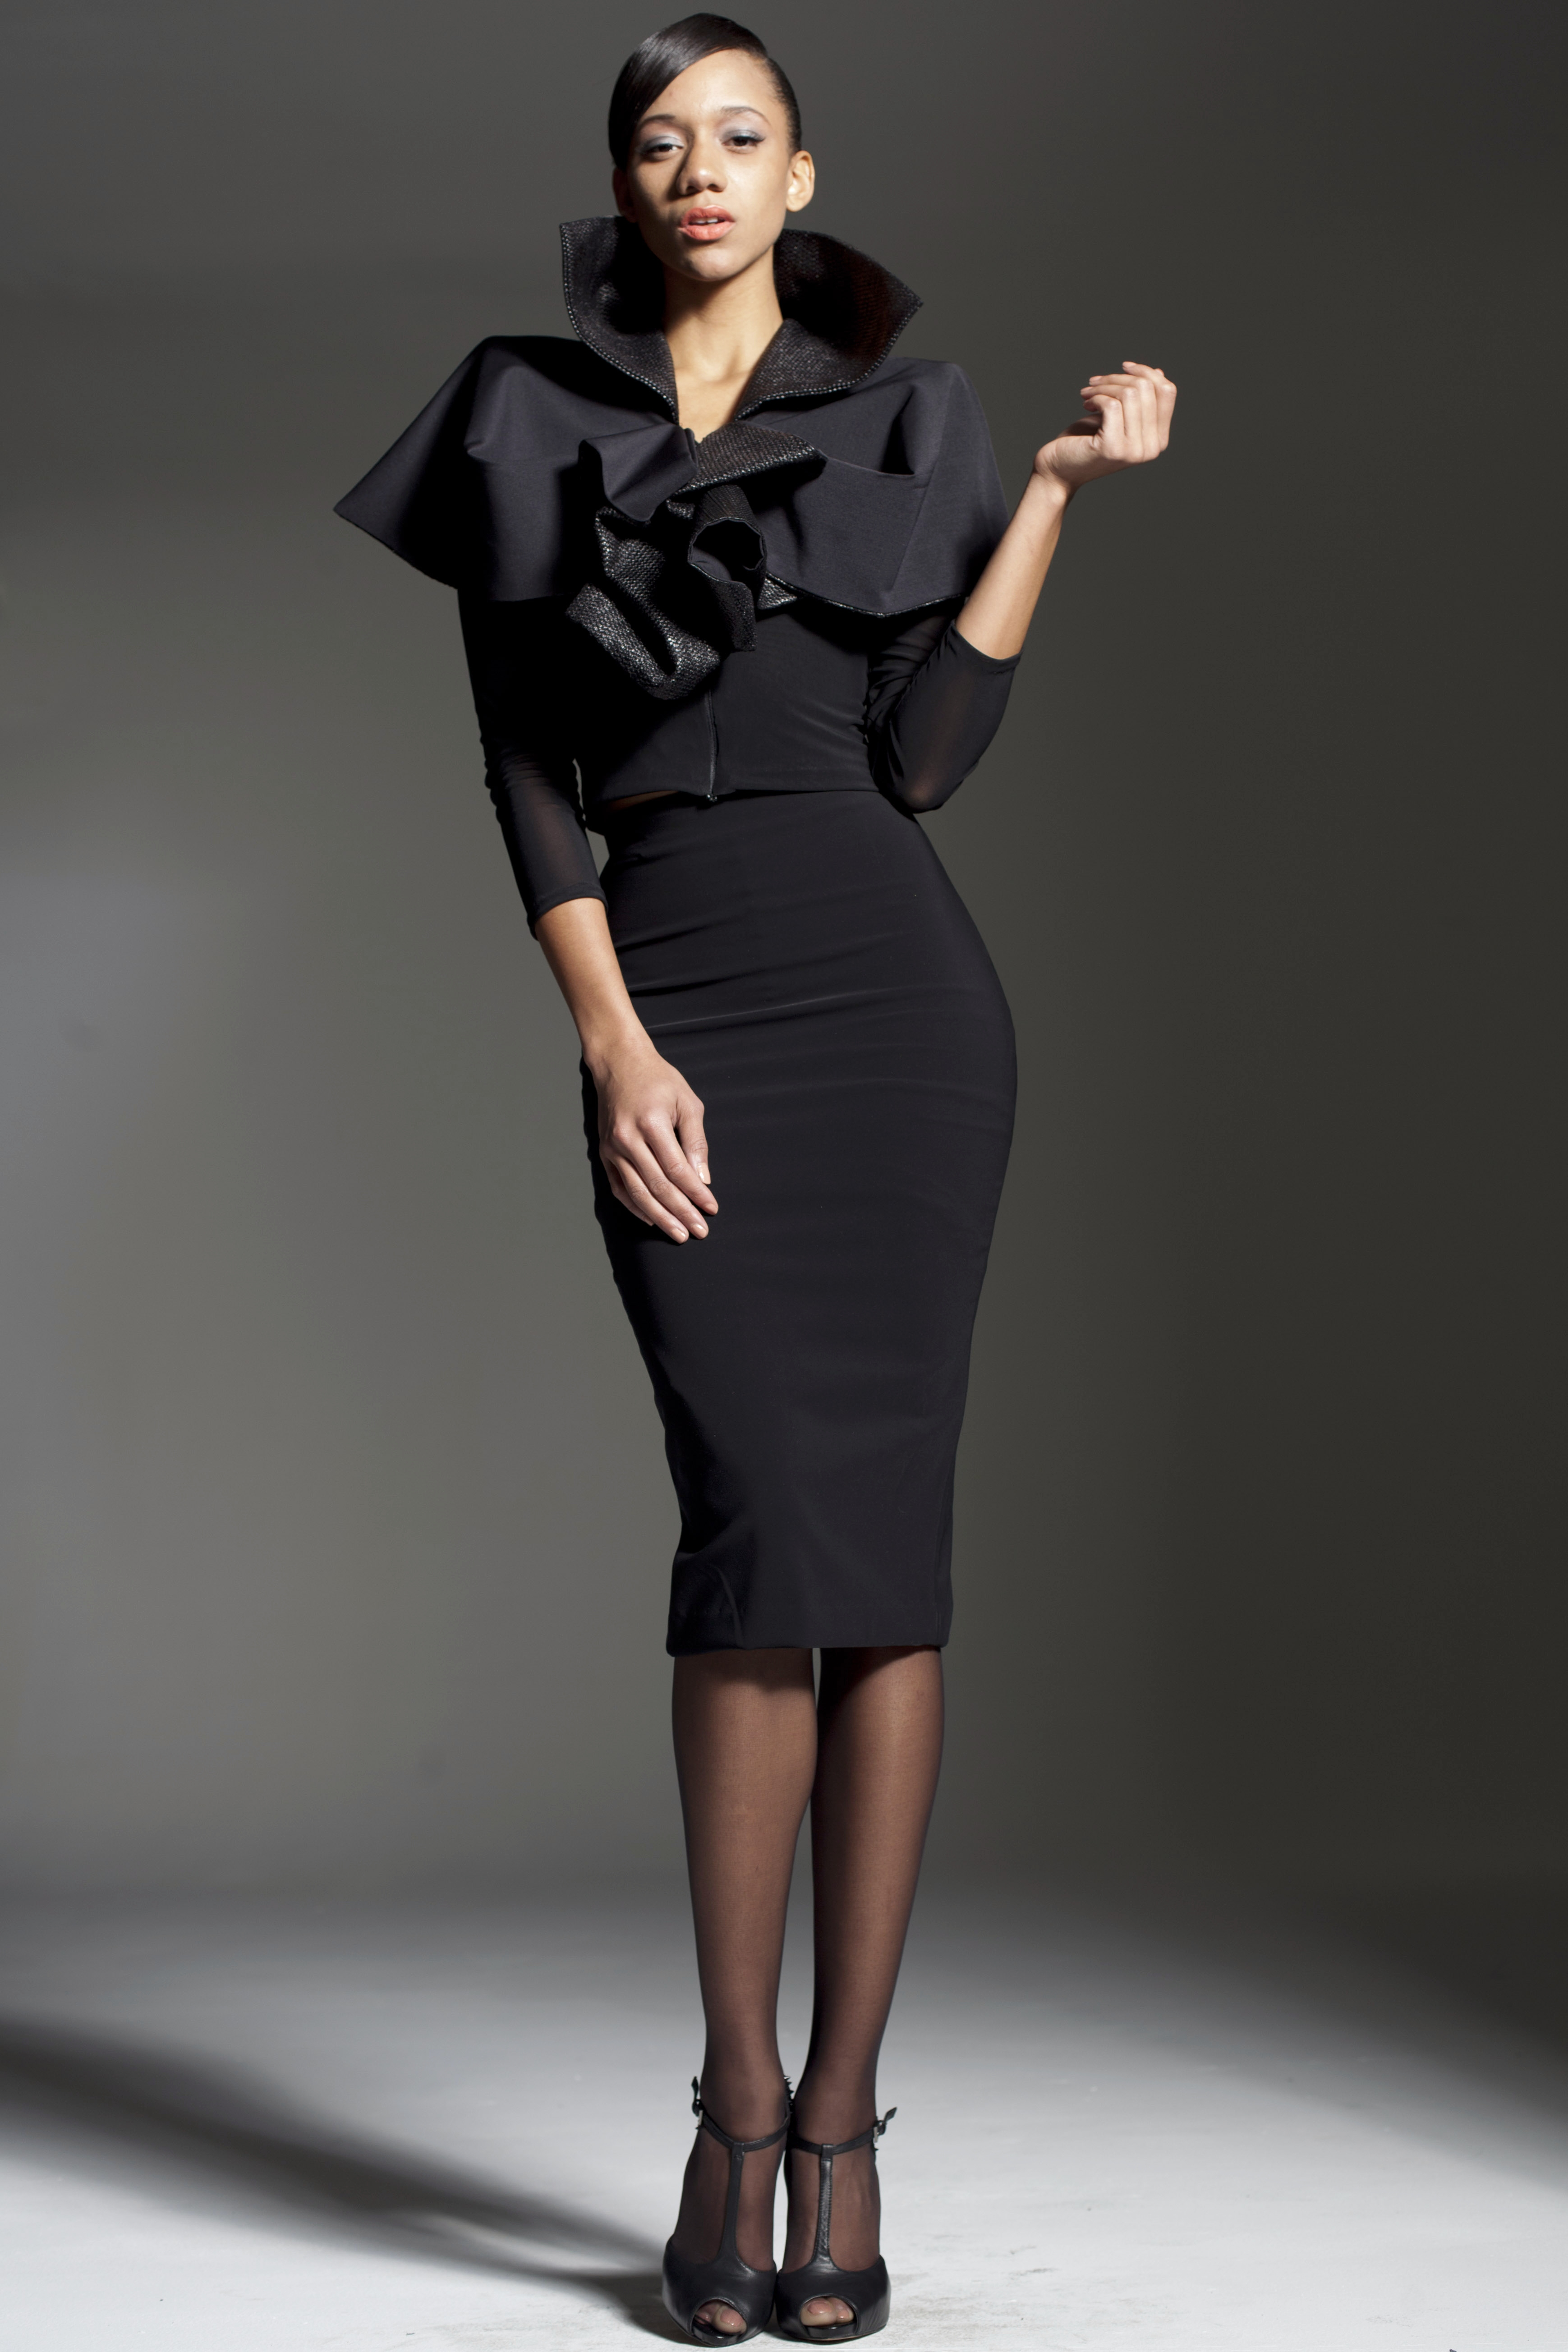 Black pencil skirt suit – Modern skirts blog for you